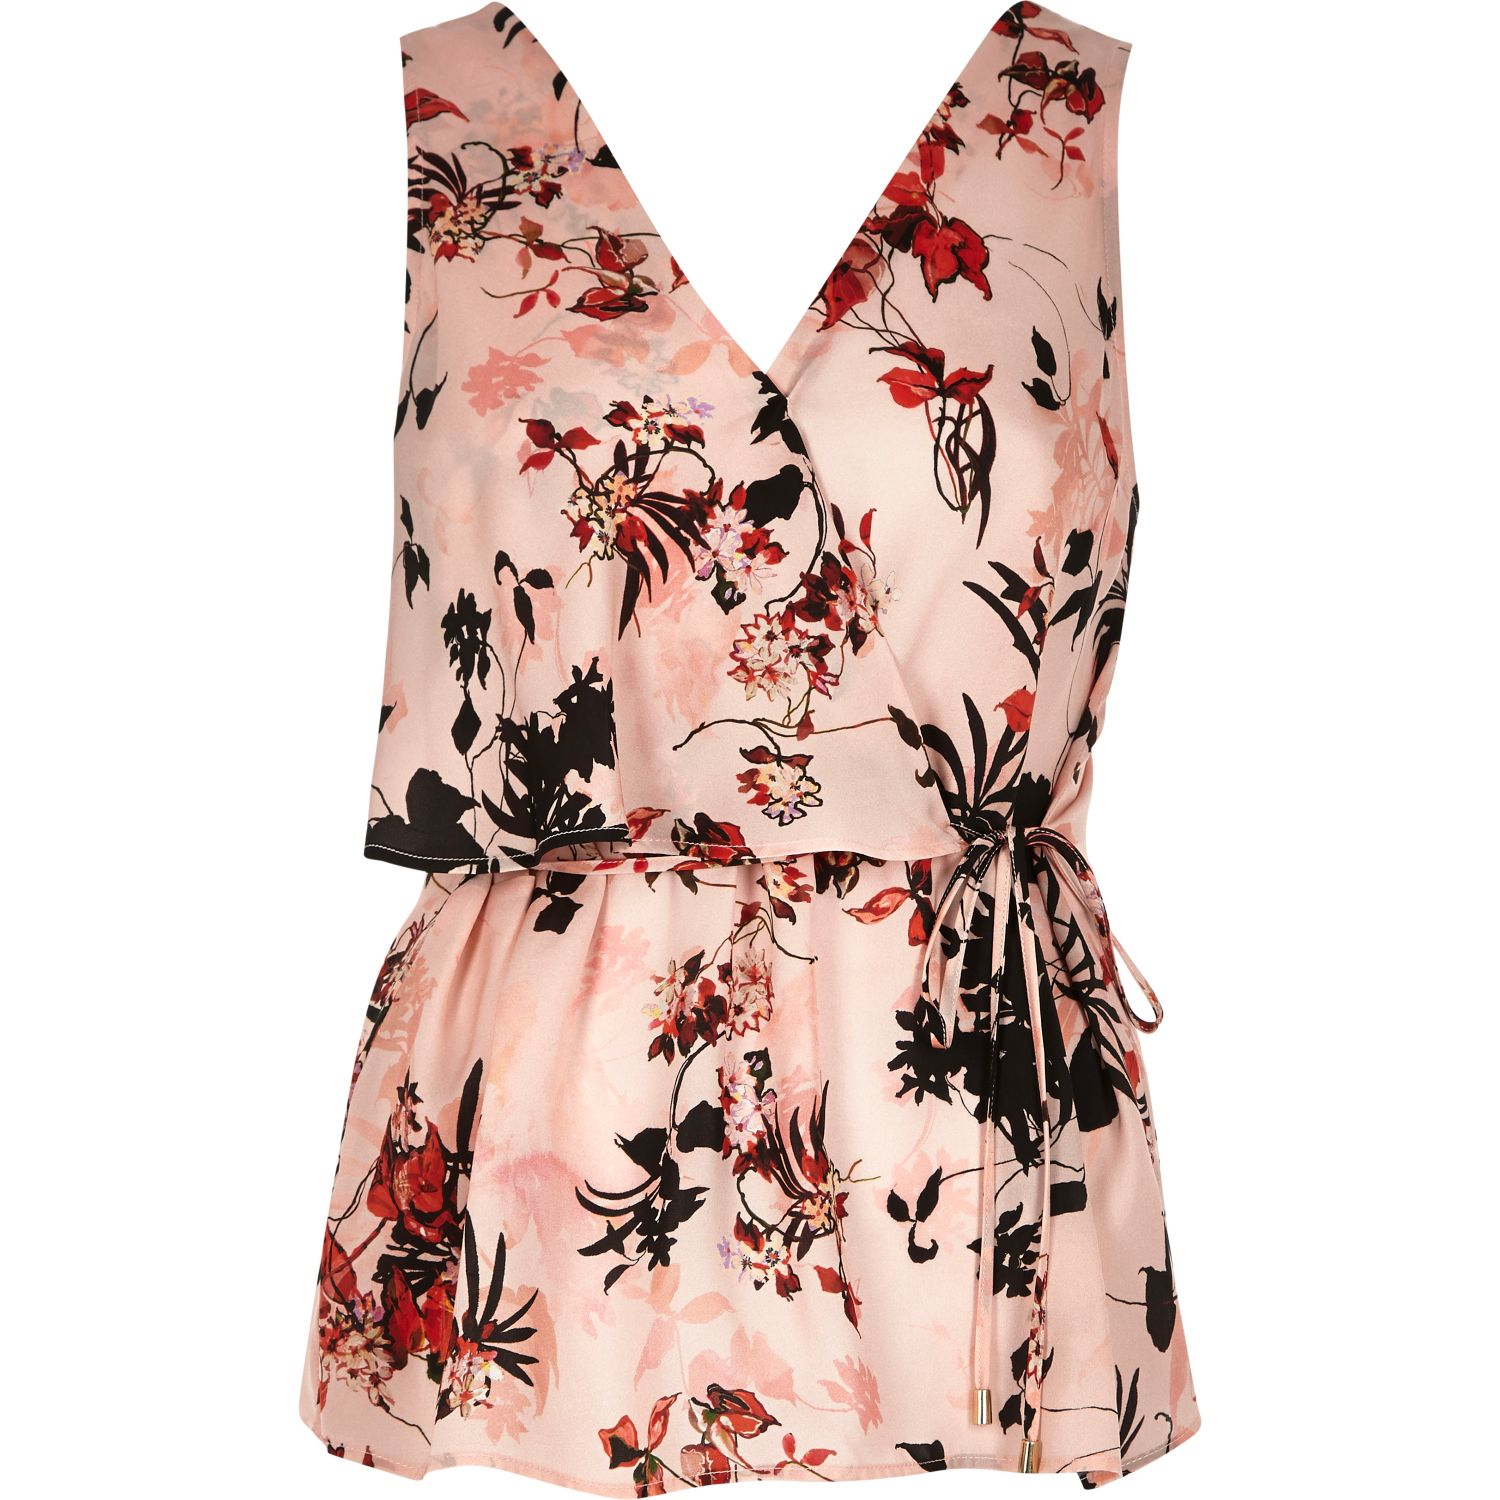 4122d9e2178ff2 River Island Pink Floral Print Frill Wrap V-neck Top in Pink - Lyst